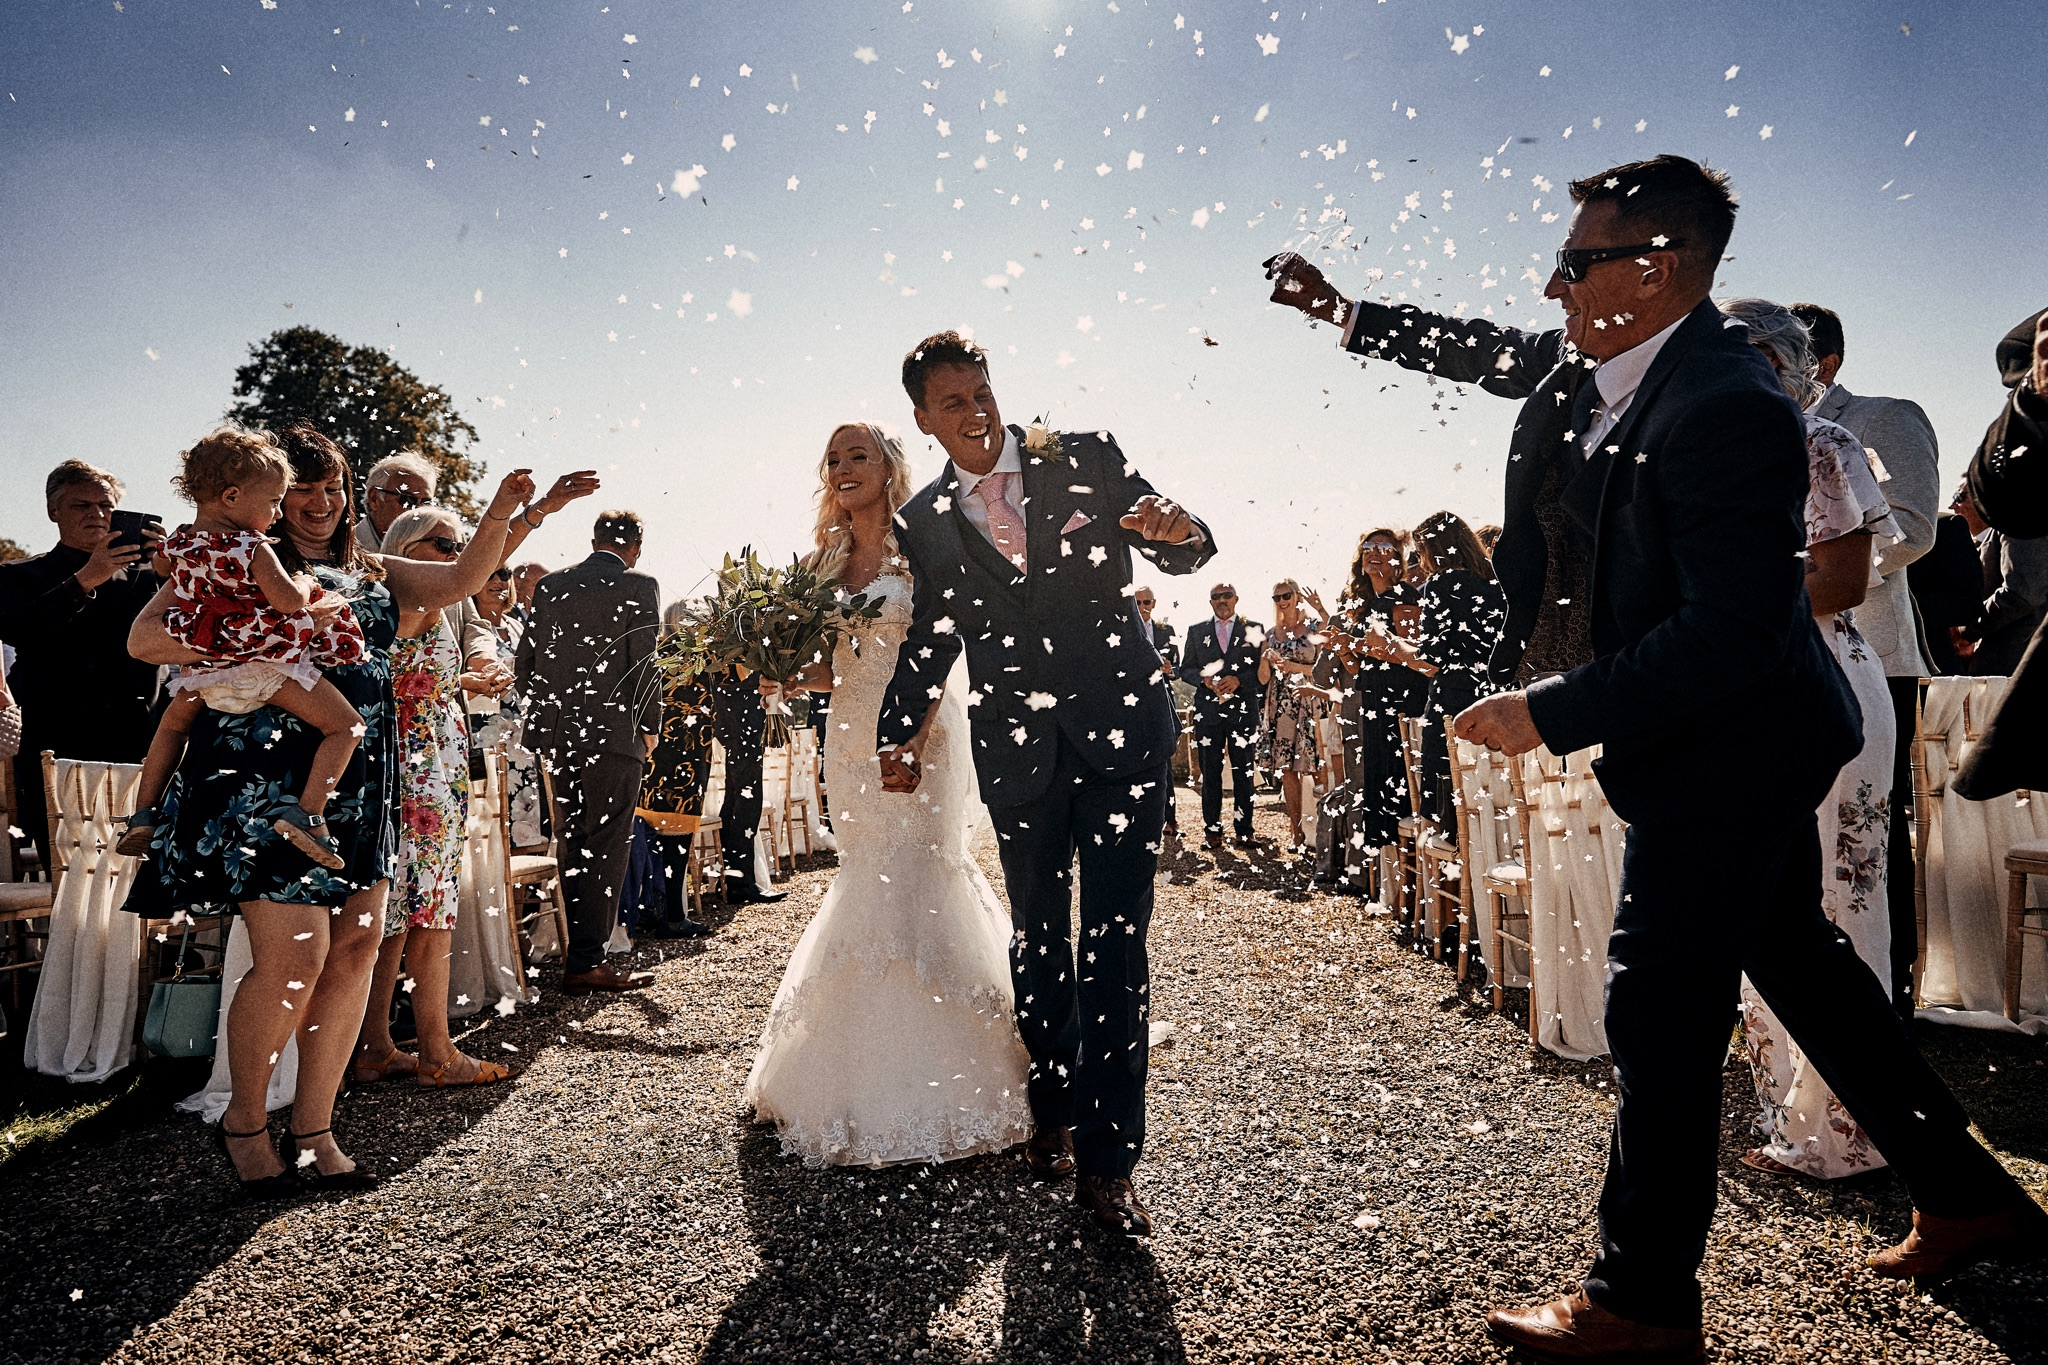 Bride and groom dodge confetti after their wedding